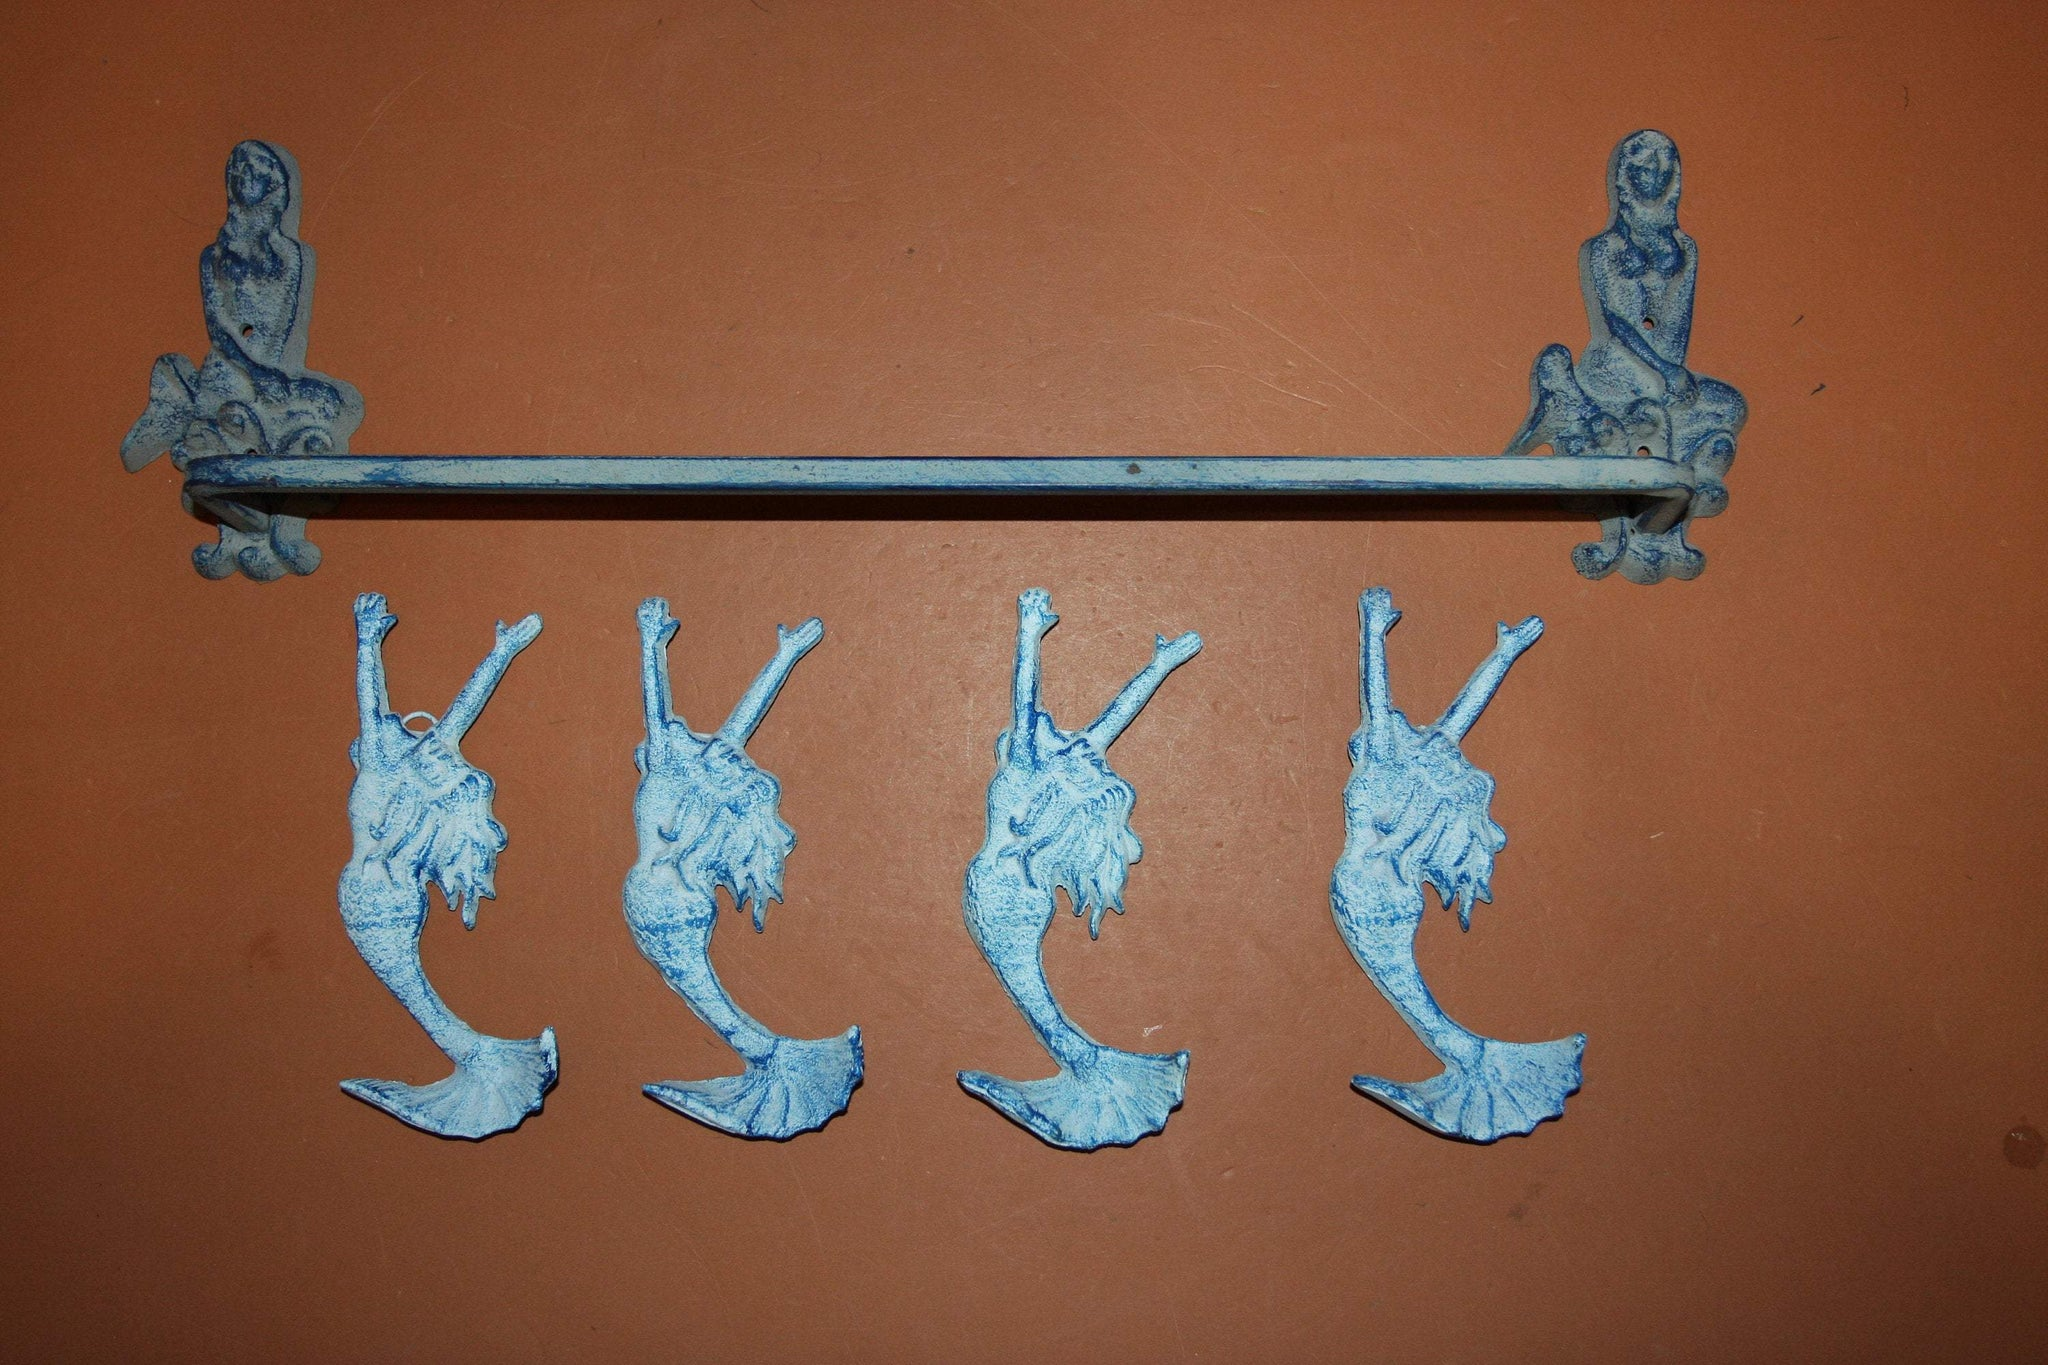 5) Aqua Color Vintage Look Mermaid Bath Decor, Mermaid Towel Bar Towel Hooks Solid Cast Iron Set of 5 pieces